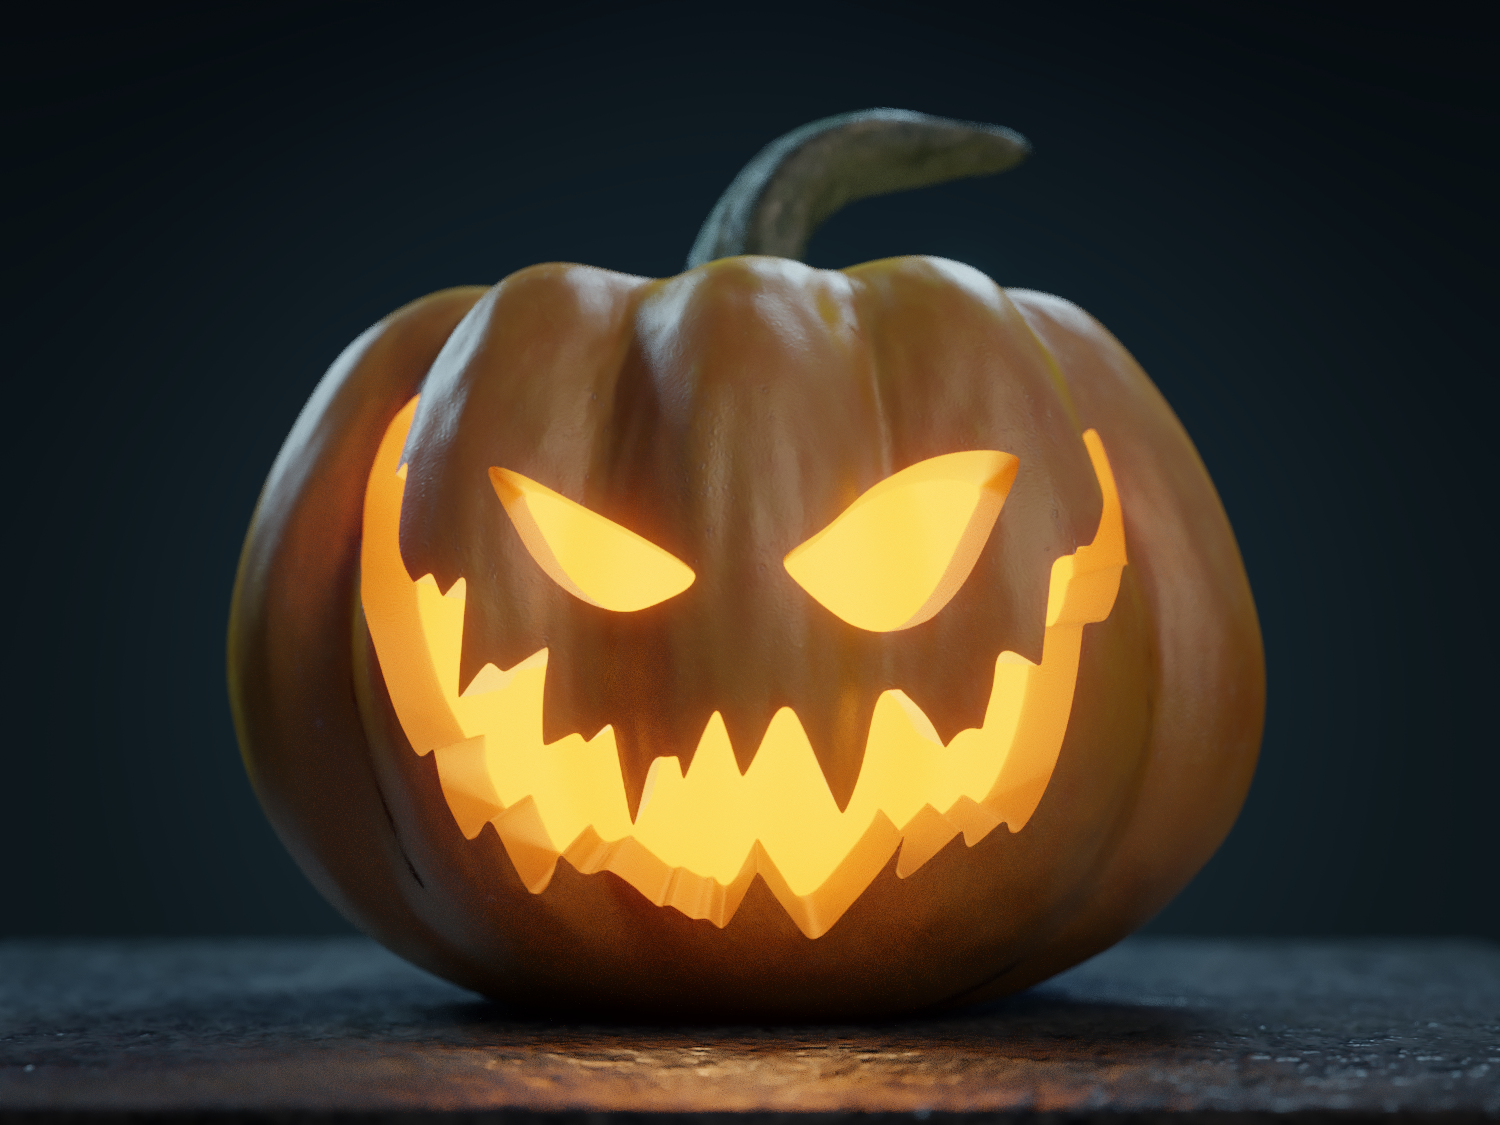 Halloween Pumpkin - Jack-o-lantern by uc9000 | 3DOcean #pumpkindesigns